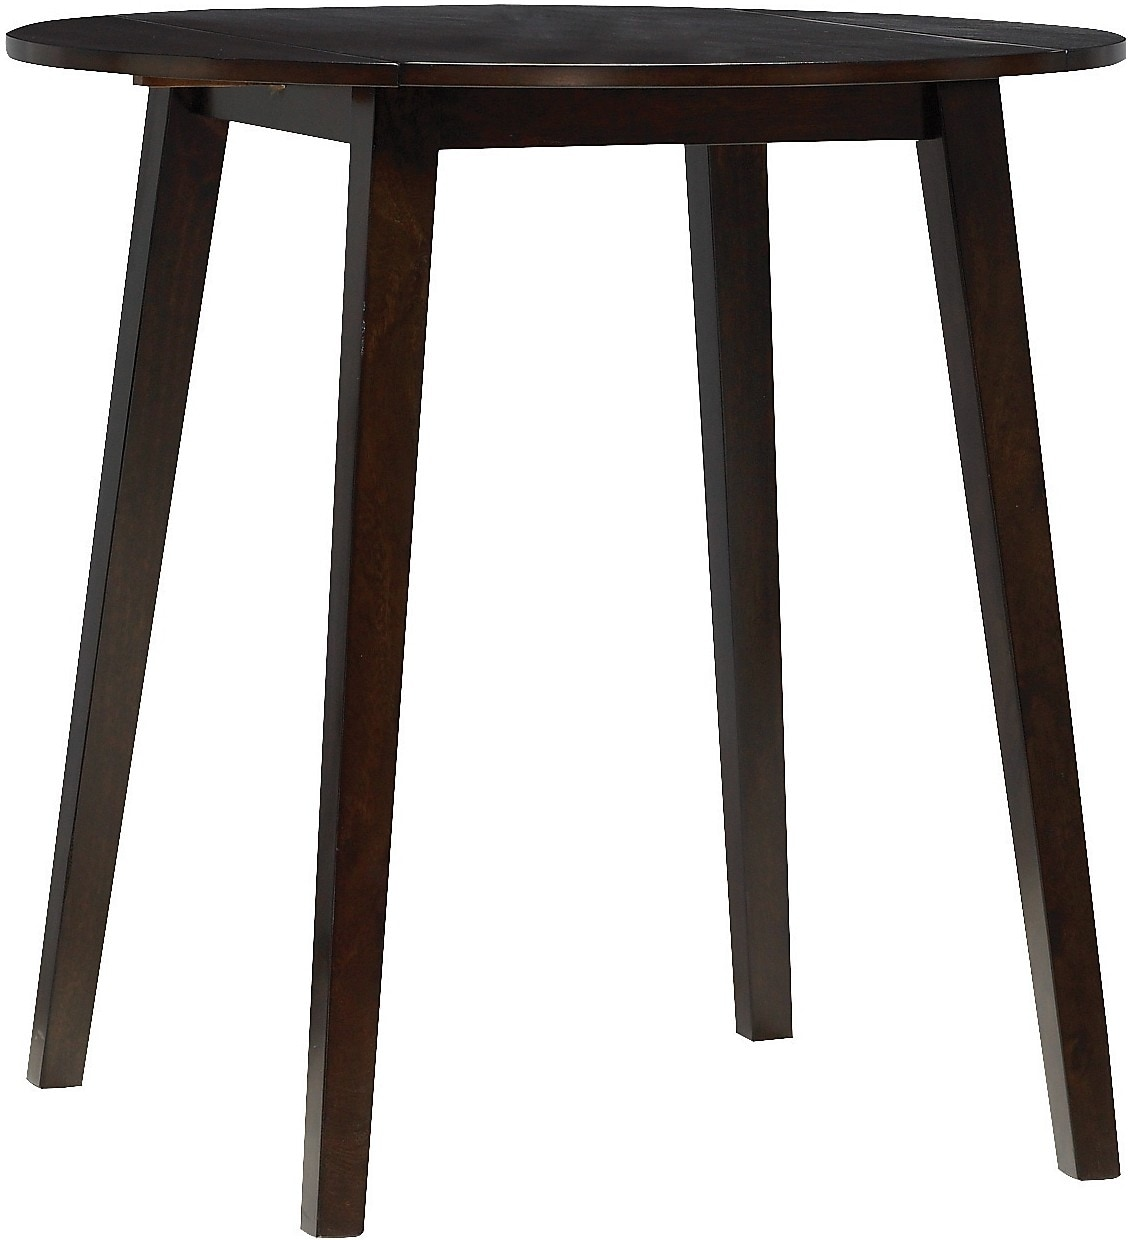 Dakota Counter Height Round Drop Leaf Table The Brick : 336066 from www.thebrick.com size 576 x 576 jpeg 30kB